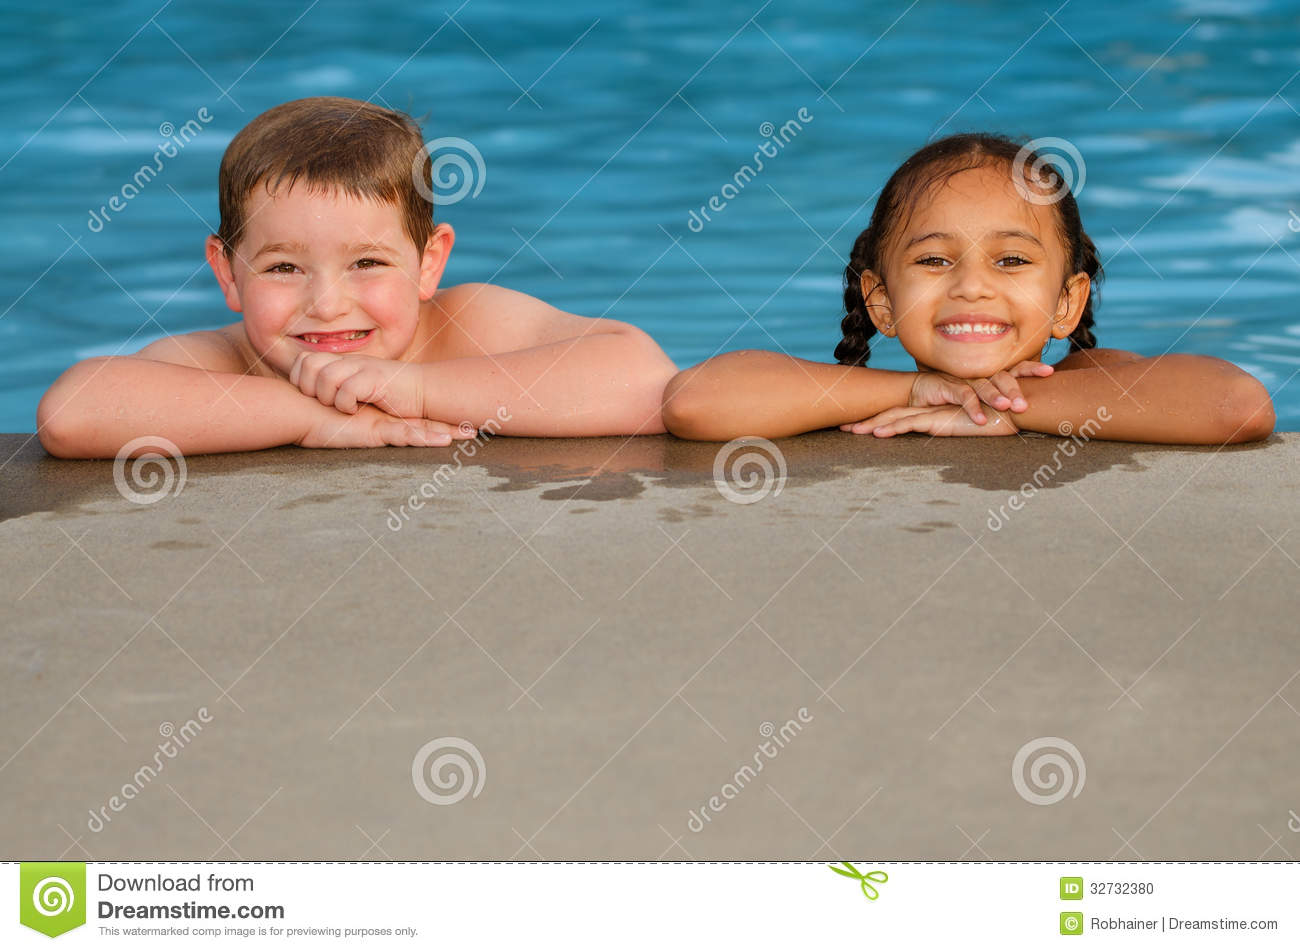 Portrait Of Caucasian Boy And Mixed Race Girl In Pool Stock Photo Image 32732380